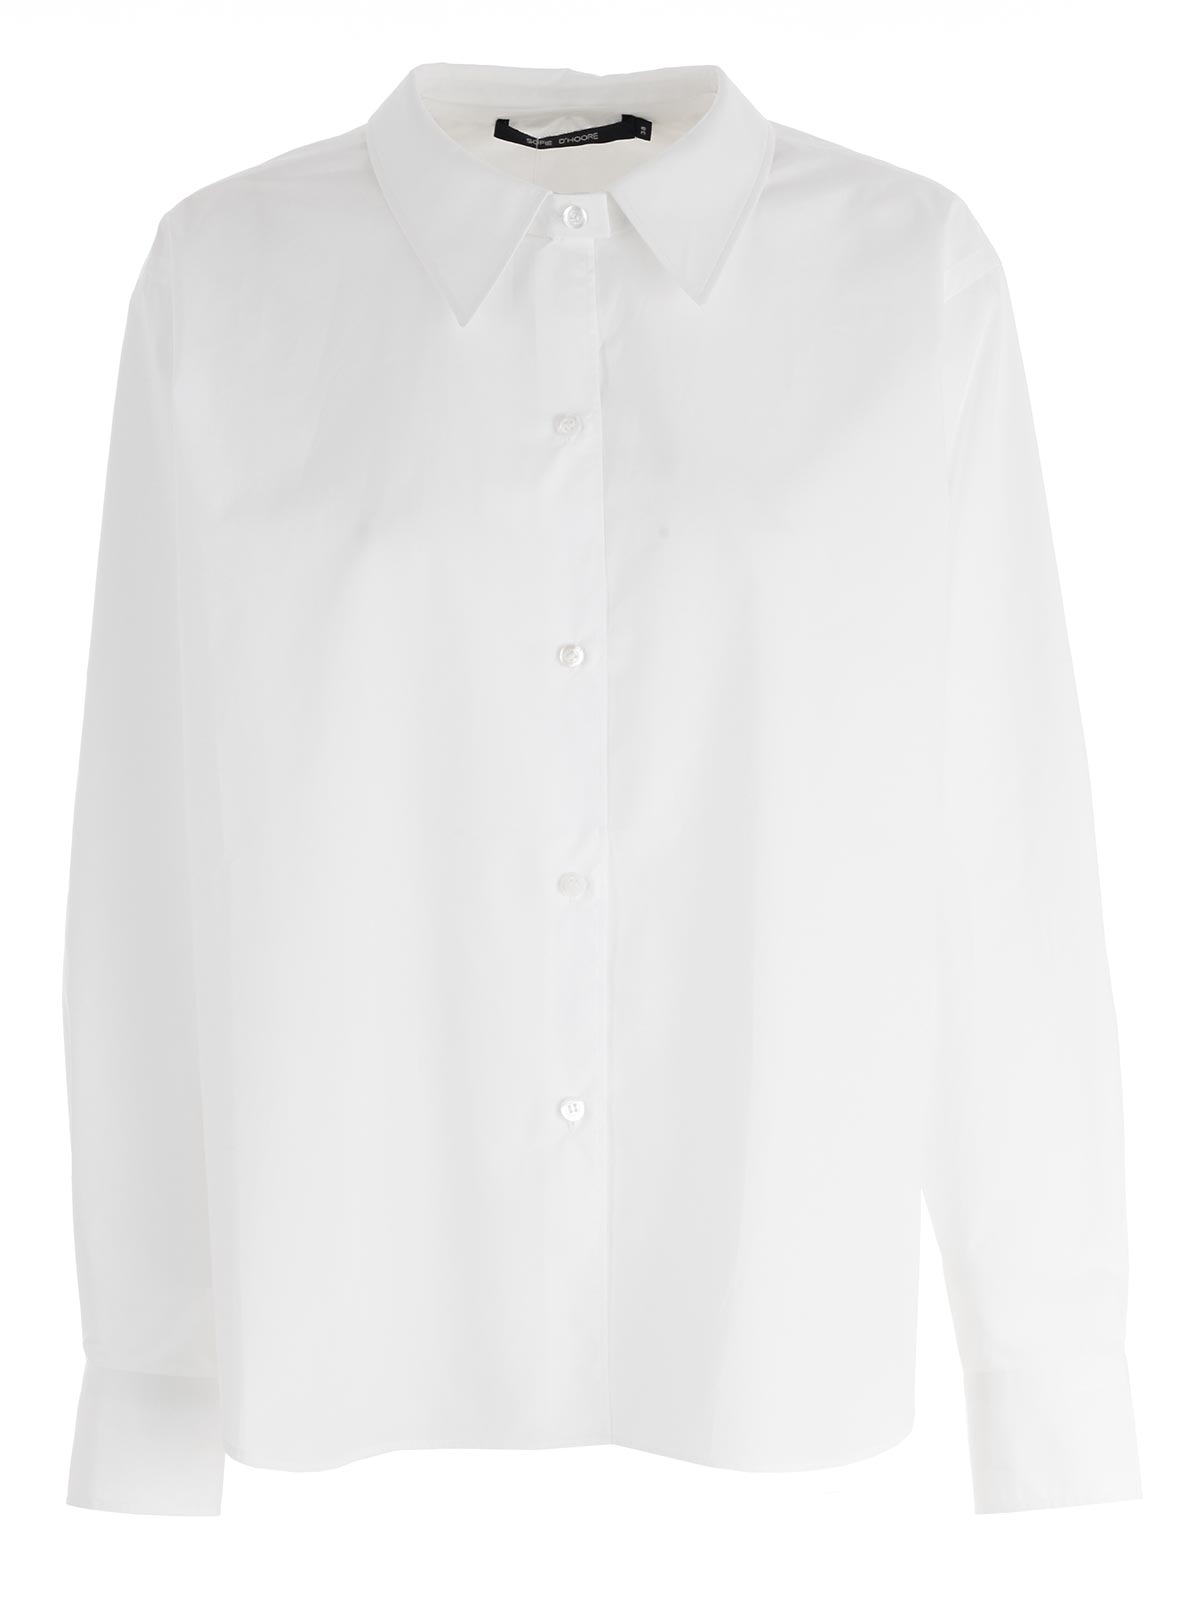 Picture of SOFIE D'HOORE SHIRTS CAMICIA CLASSICA